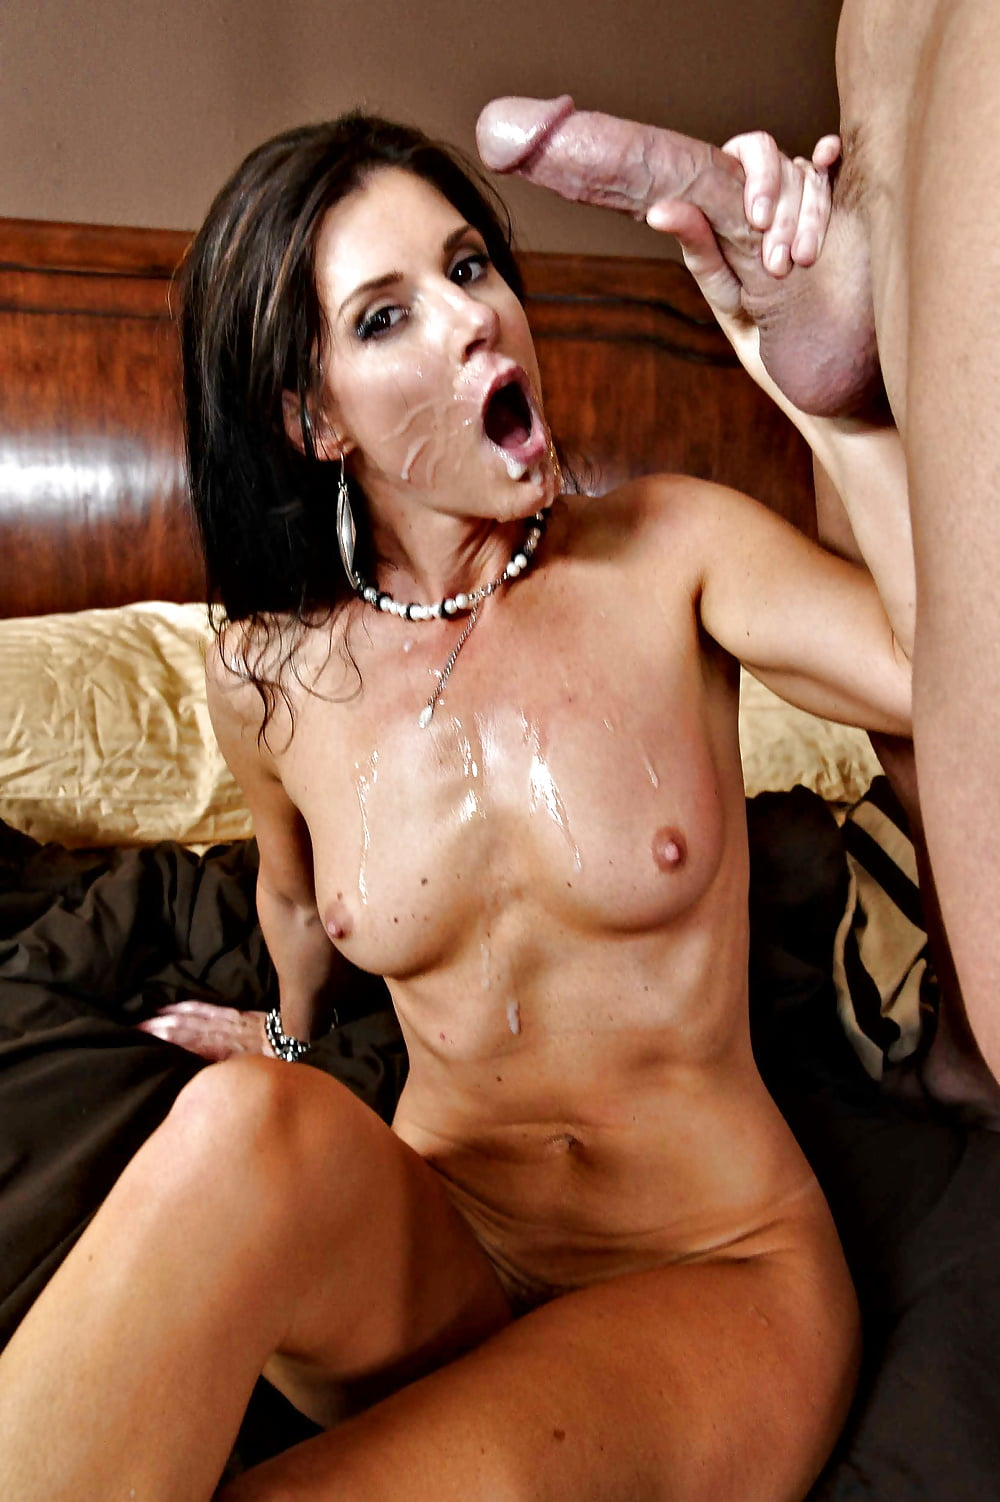 Mature with huge tits amateur scenes of dirty horse cock sucking zoophilia